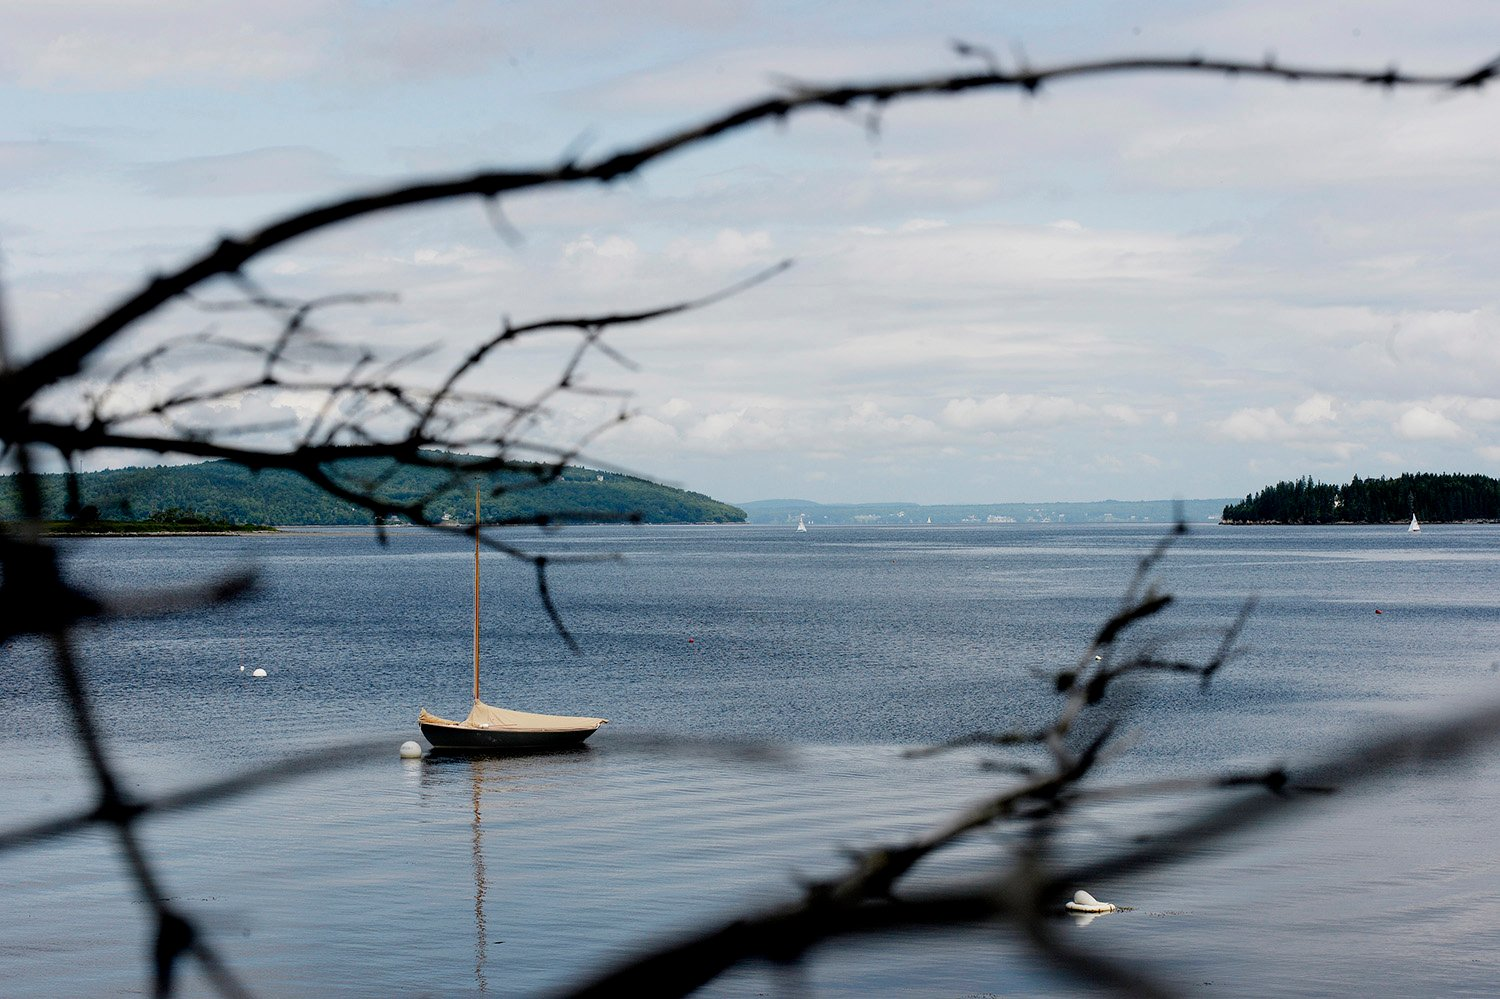 A view across Penobscot Bay from Islesboro.